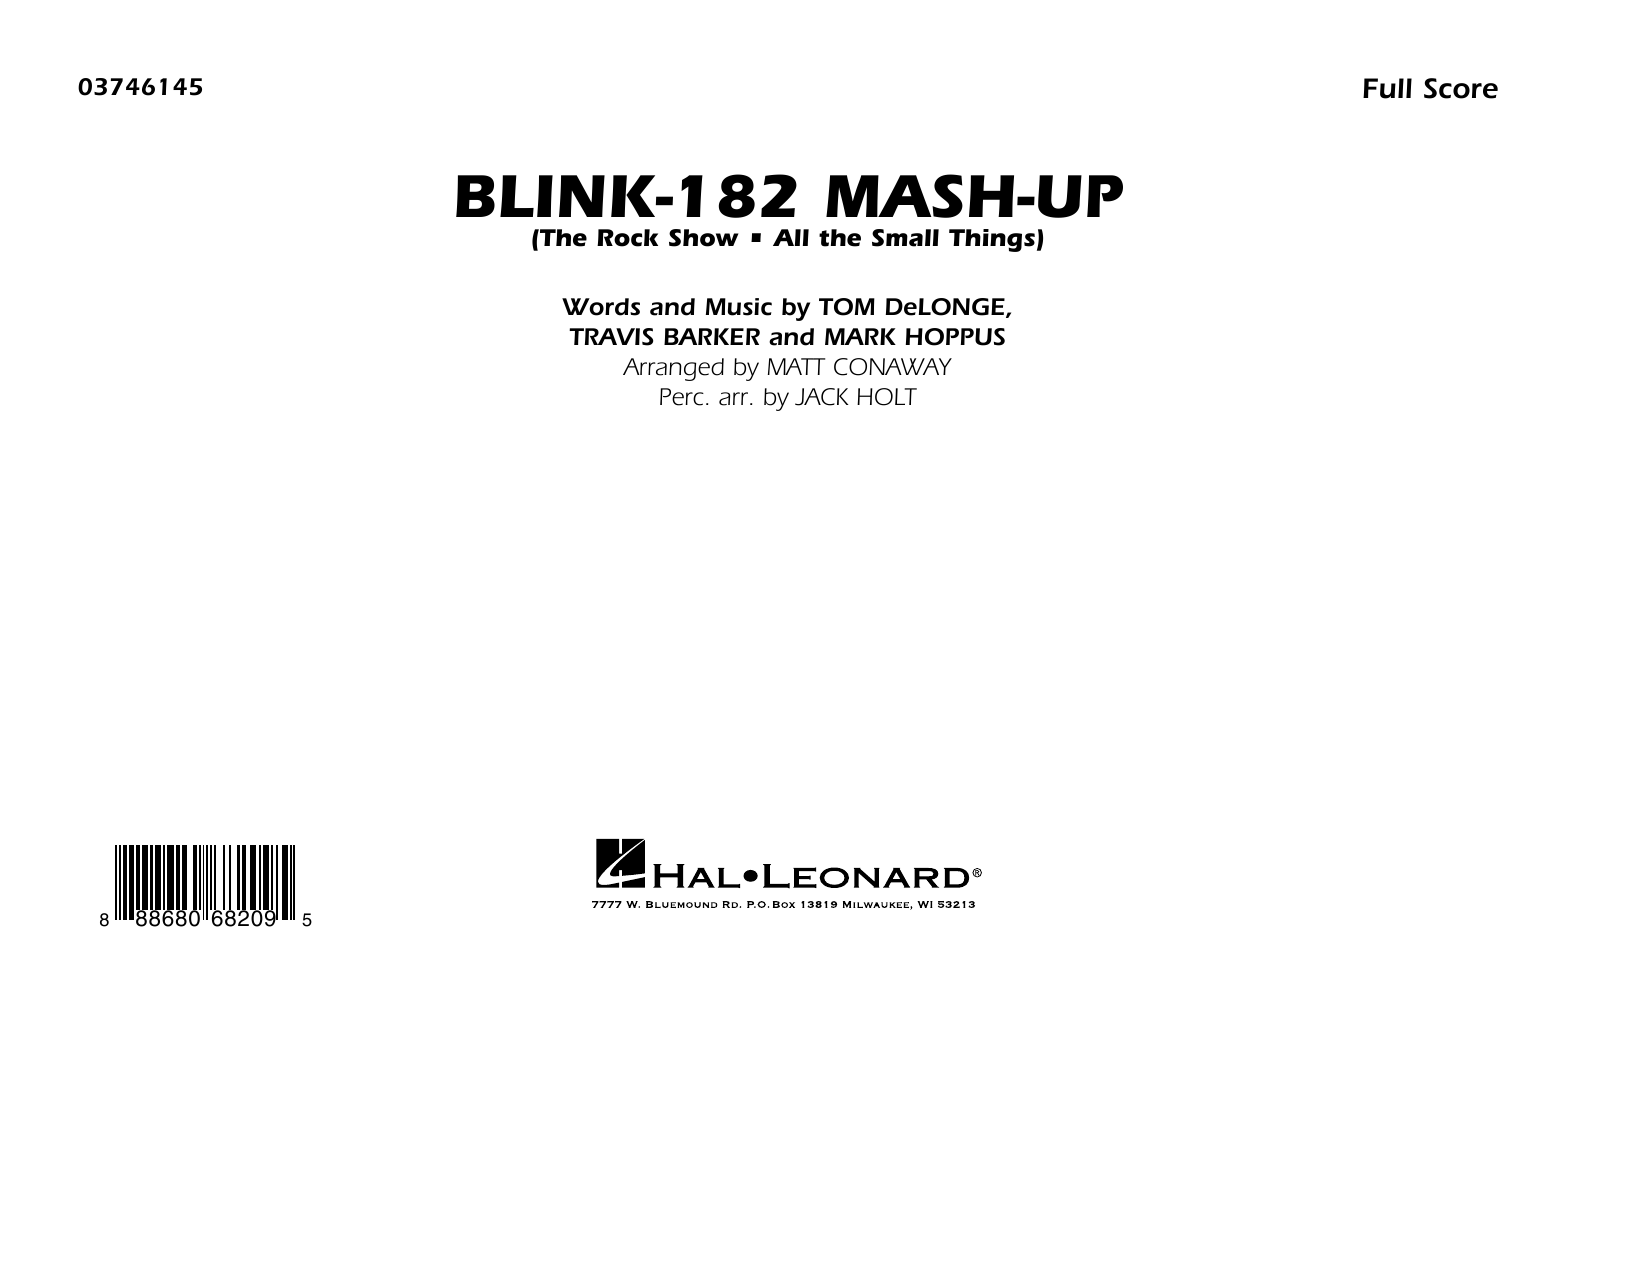 Blink-182 Mash-Up (COMPLETE) sheet music for marching band by Blink-182, Jack Holt and Matt Conaway. Score Image Preview.